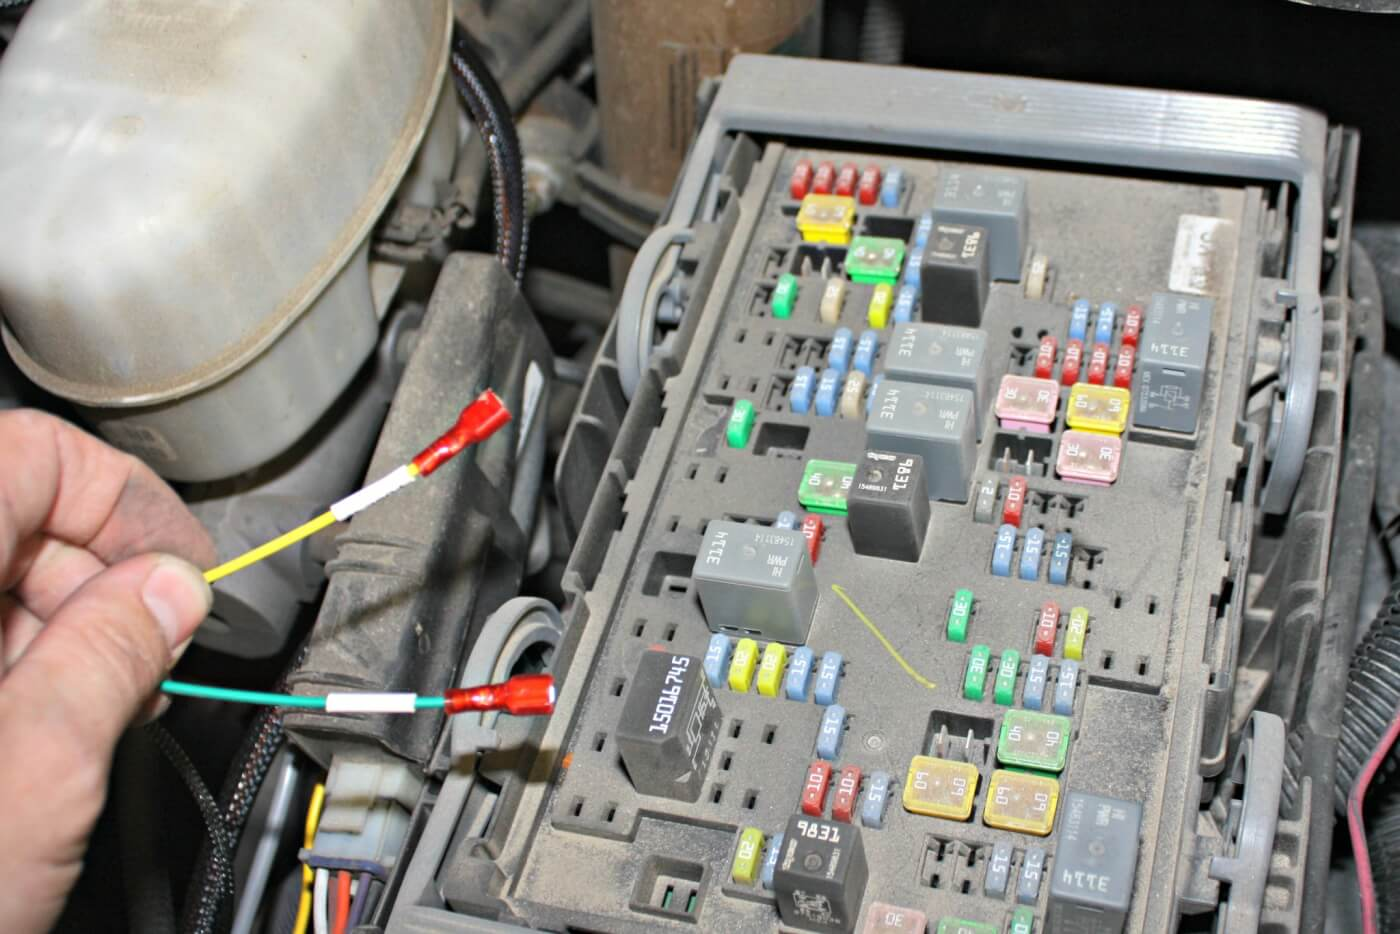 12. Inside the under hood fuse box, the Edge Juice system will use two wires connected to fuse jumpers that will allow the kit to be setup with a Turbo Timer. The turbo timer can be setup to idle the engine even after you've shut the key off and stepped out of the truck until a pre-set time or EGT is reached. This helps the engine come down to a safe shutdown temperature prolonging component life, like turbocharger bearings.